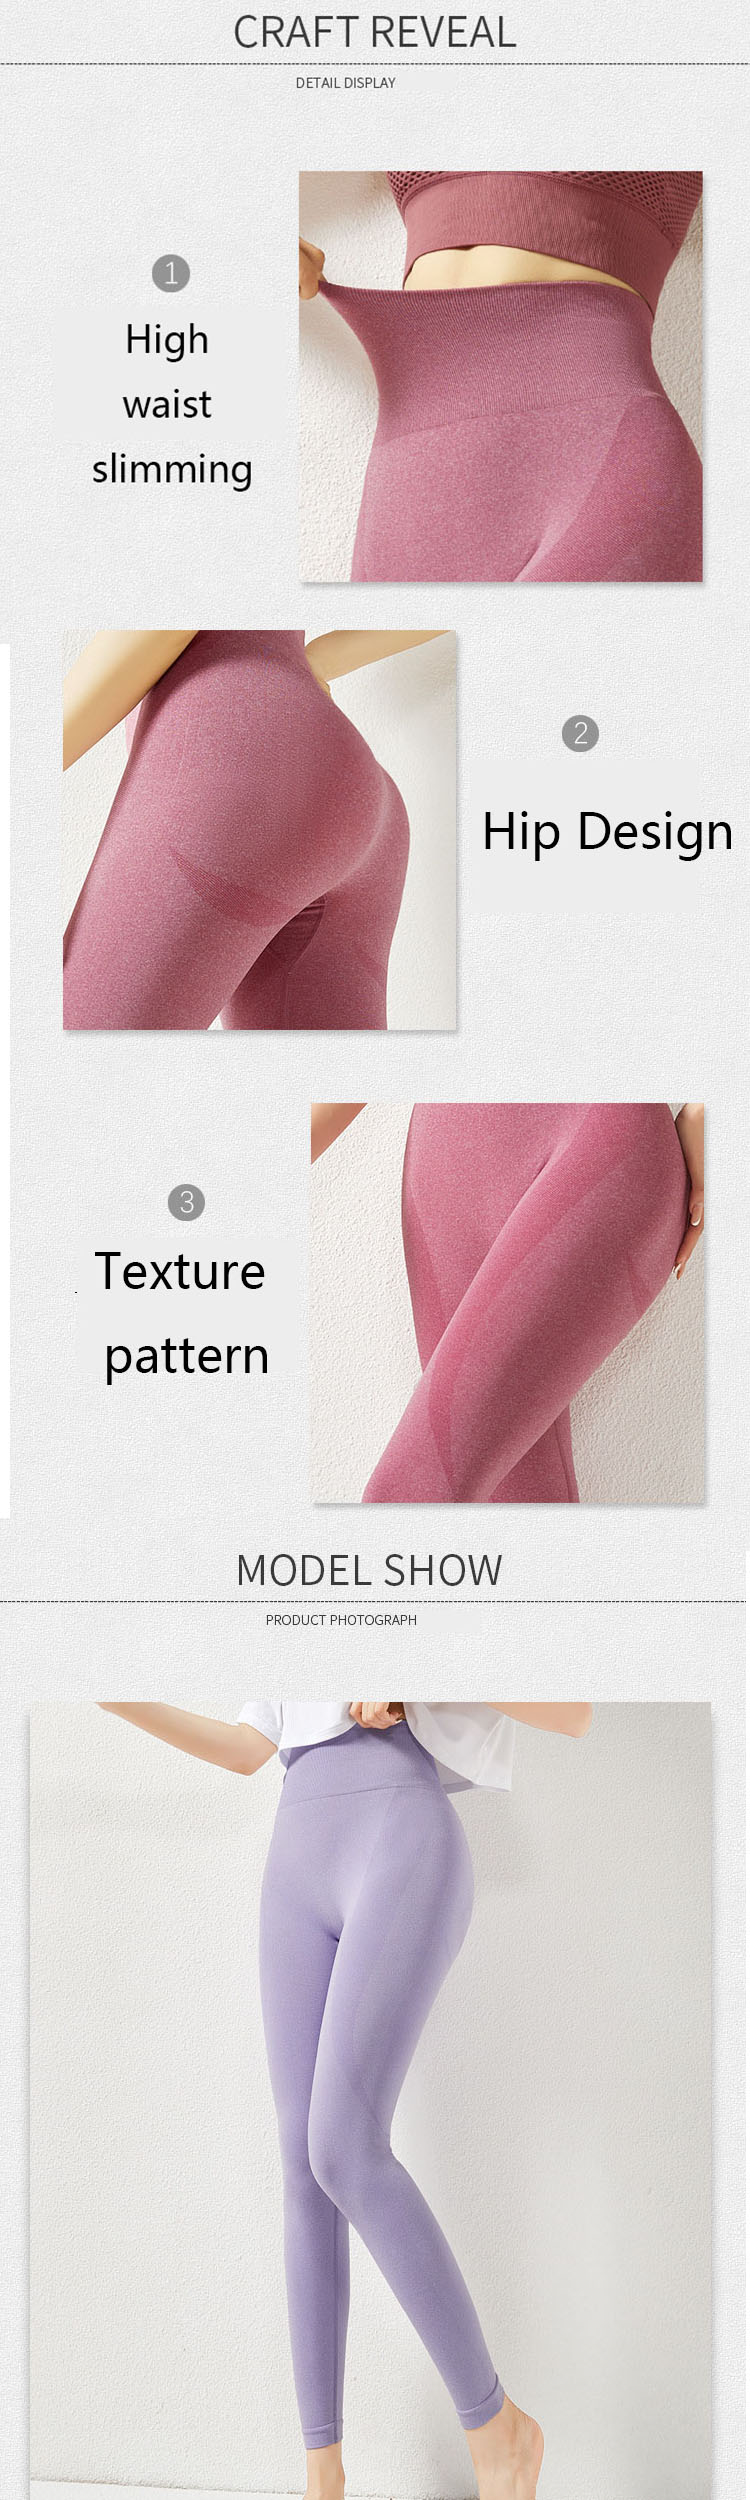 High elasticity and comfortable wrapping, tight and not squeezing, abdomen is thinner.